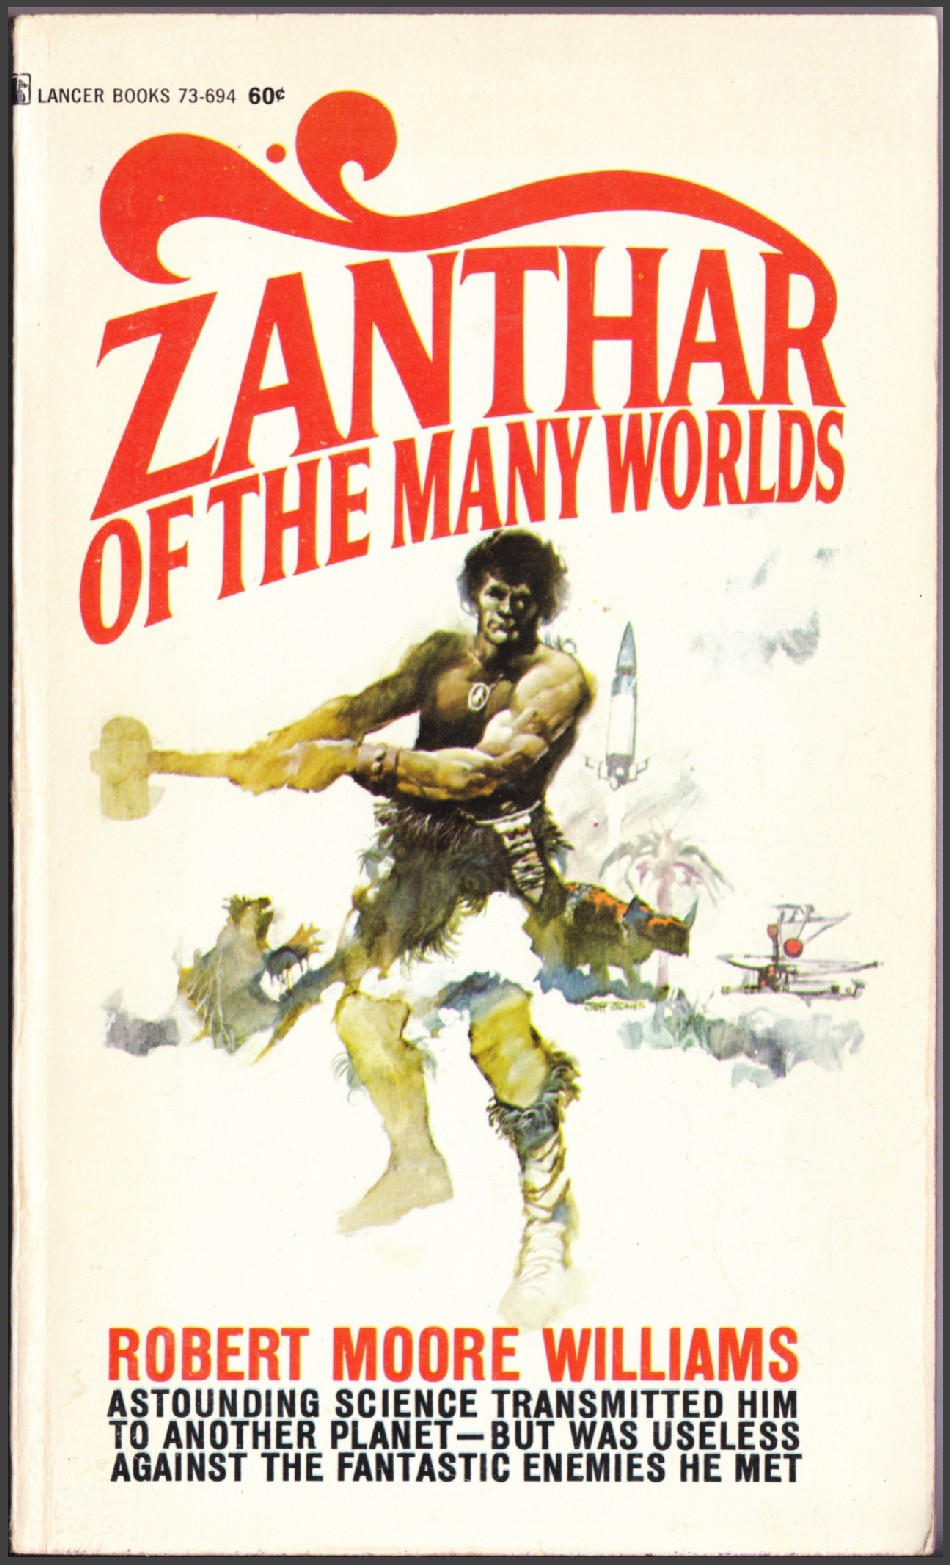 Zanthar Offs Many Worlds